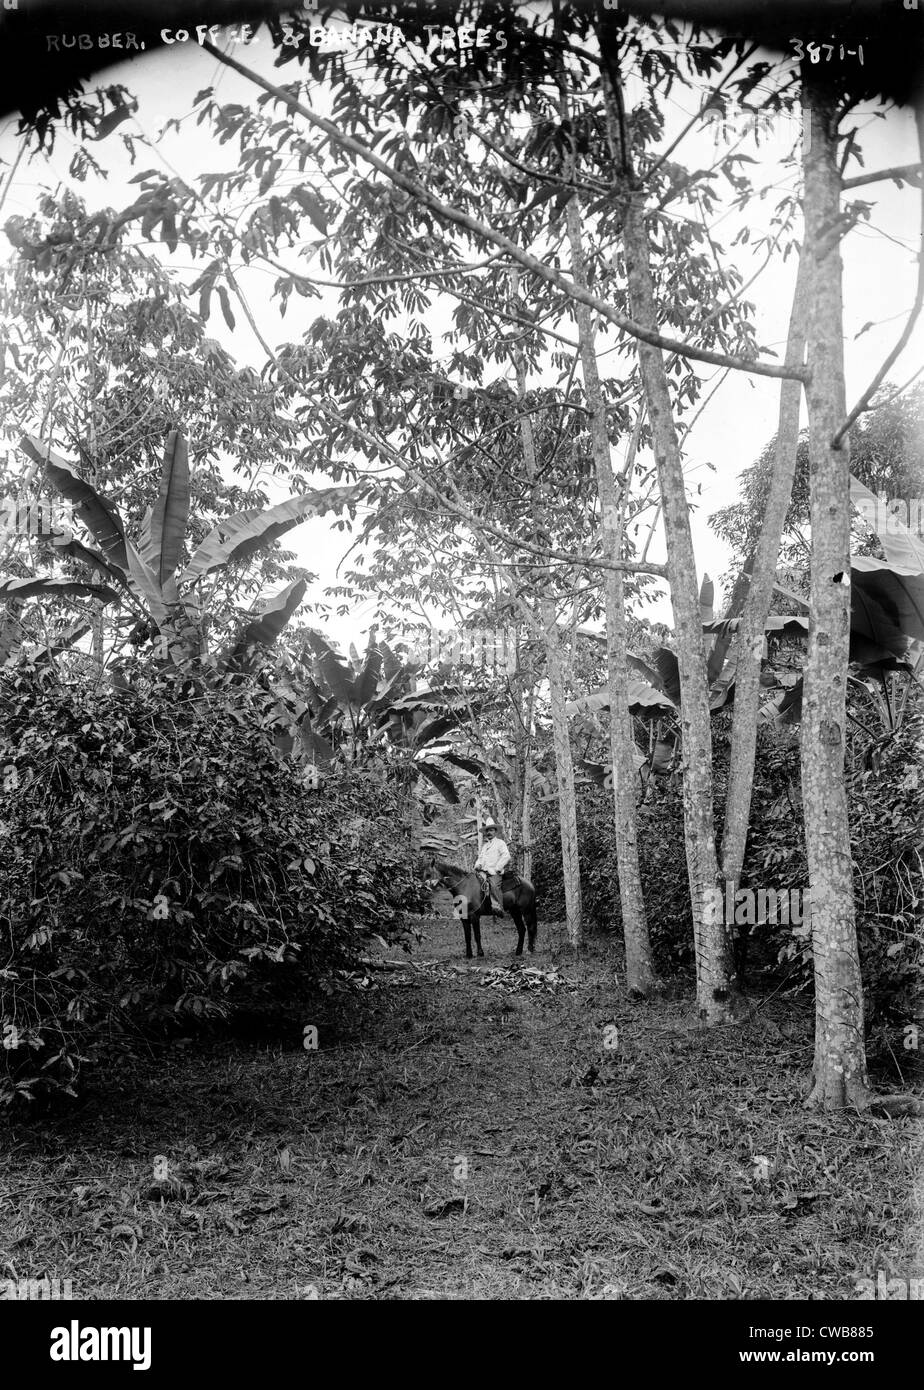 Rubber, coffee and banana trees, 1910s - Stock Image